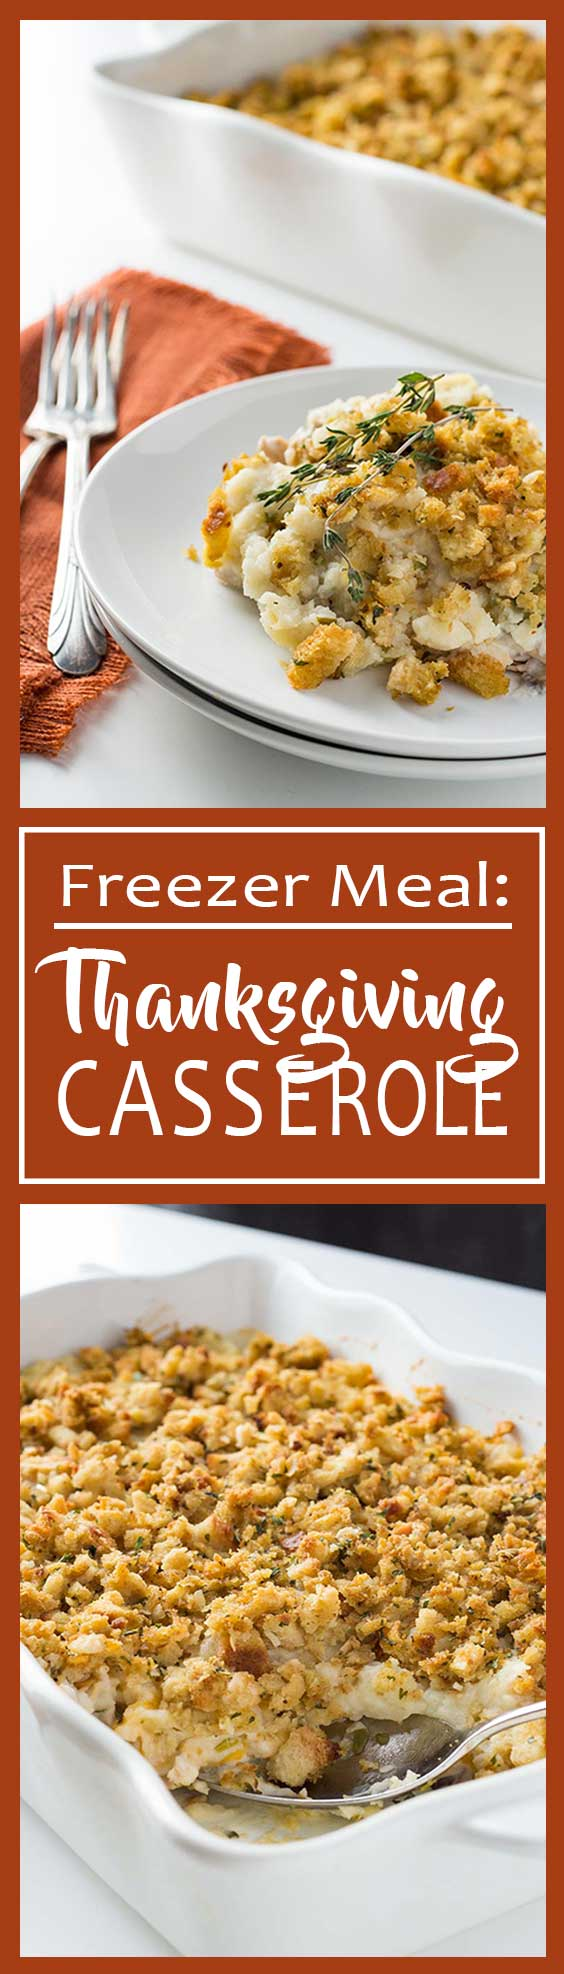 Don't waste your Thanksgiving leftovers - use them to make this easy freezer meal! You'll get all the delicious flavors of Thanksgiving dinner in one easy dish, but without all the hard work! #Thanksgiving #freezermeals #casserole #leftovers